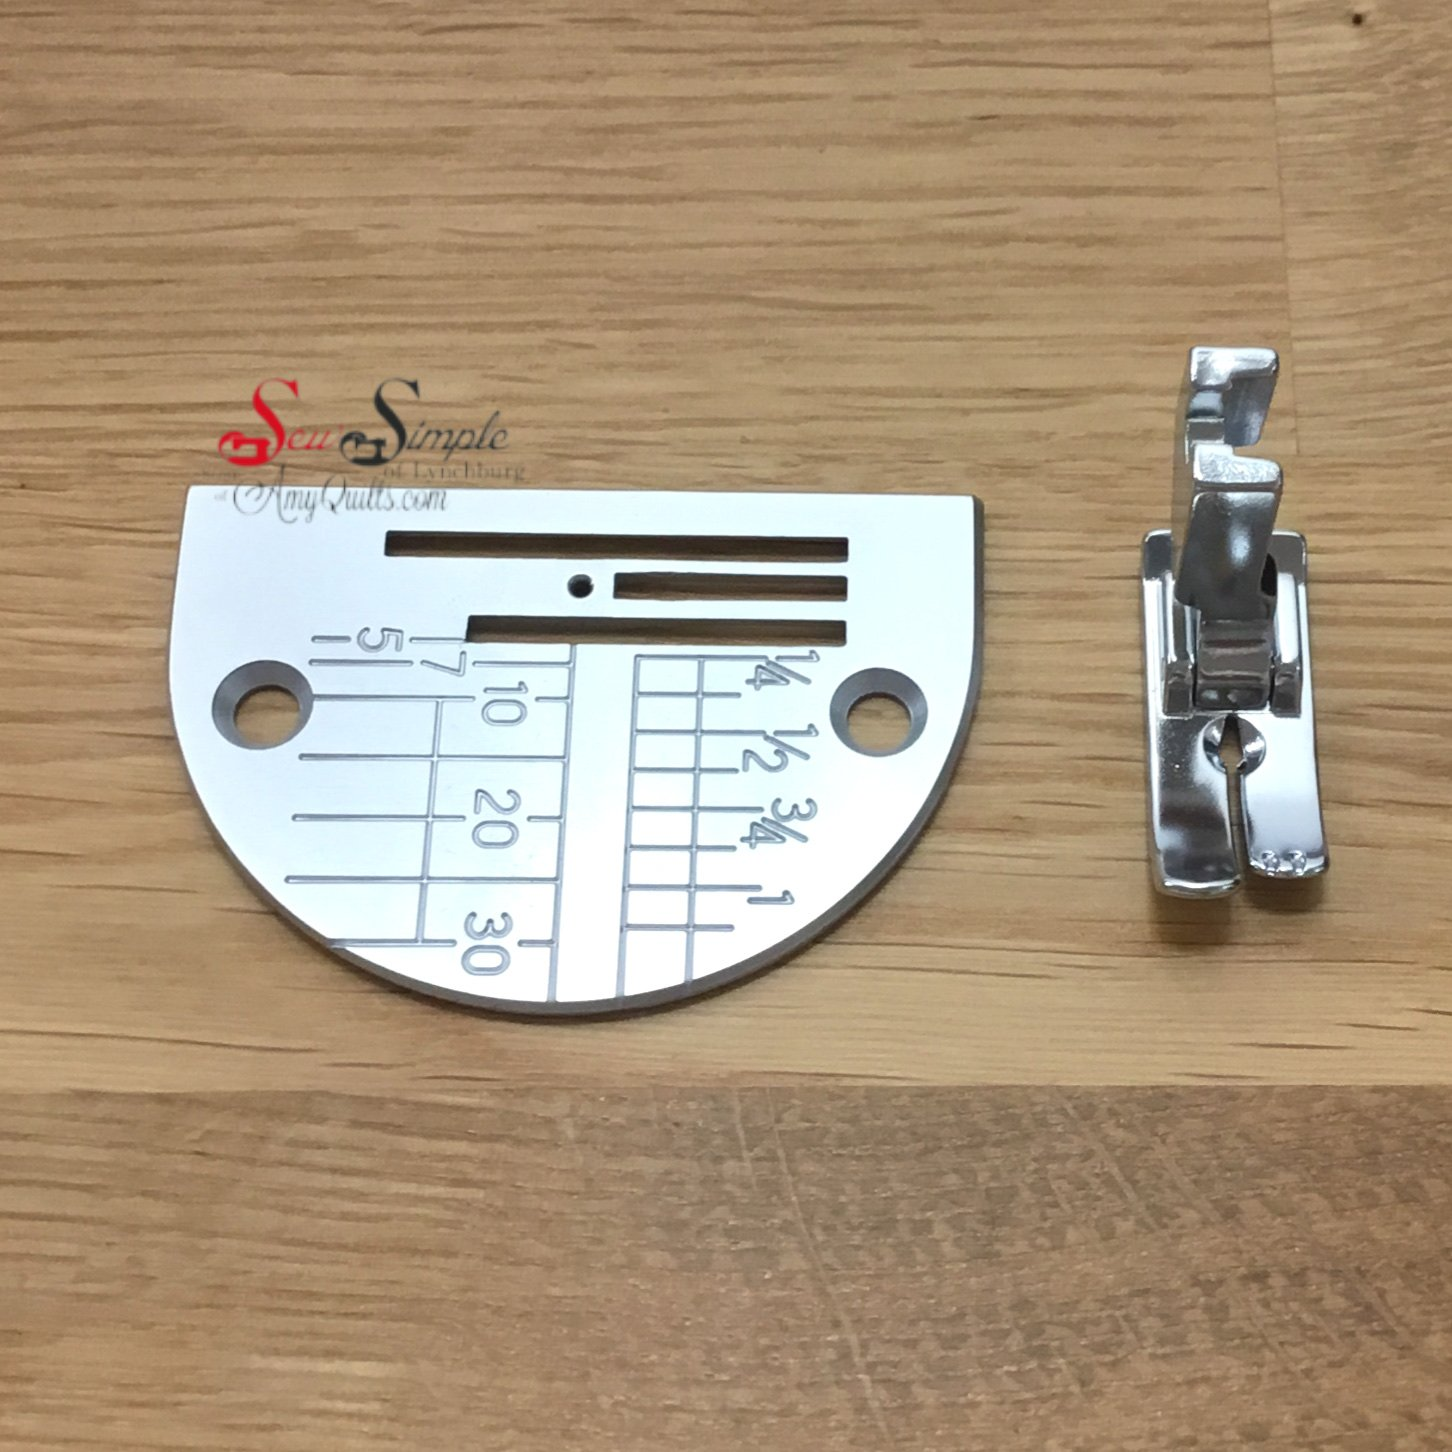 Janome Straight Stitch Foot with Needle Plate for DB Hook Models